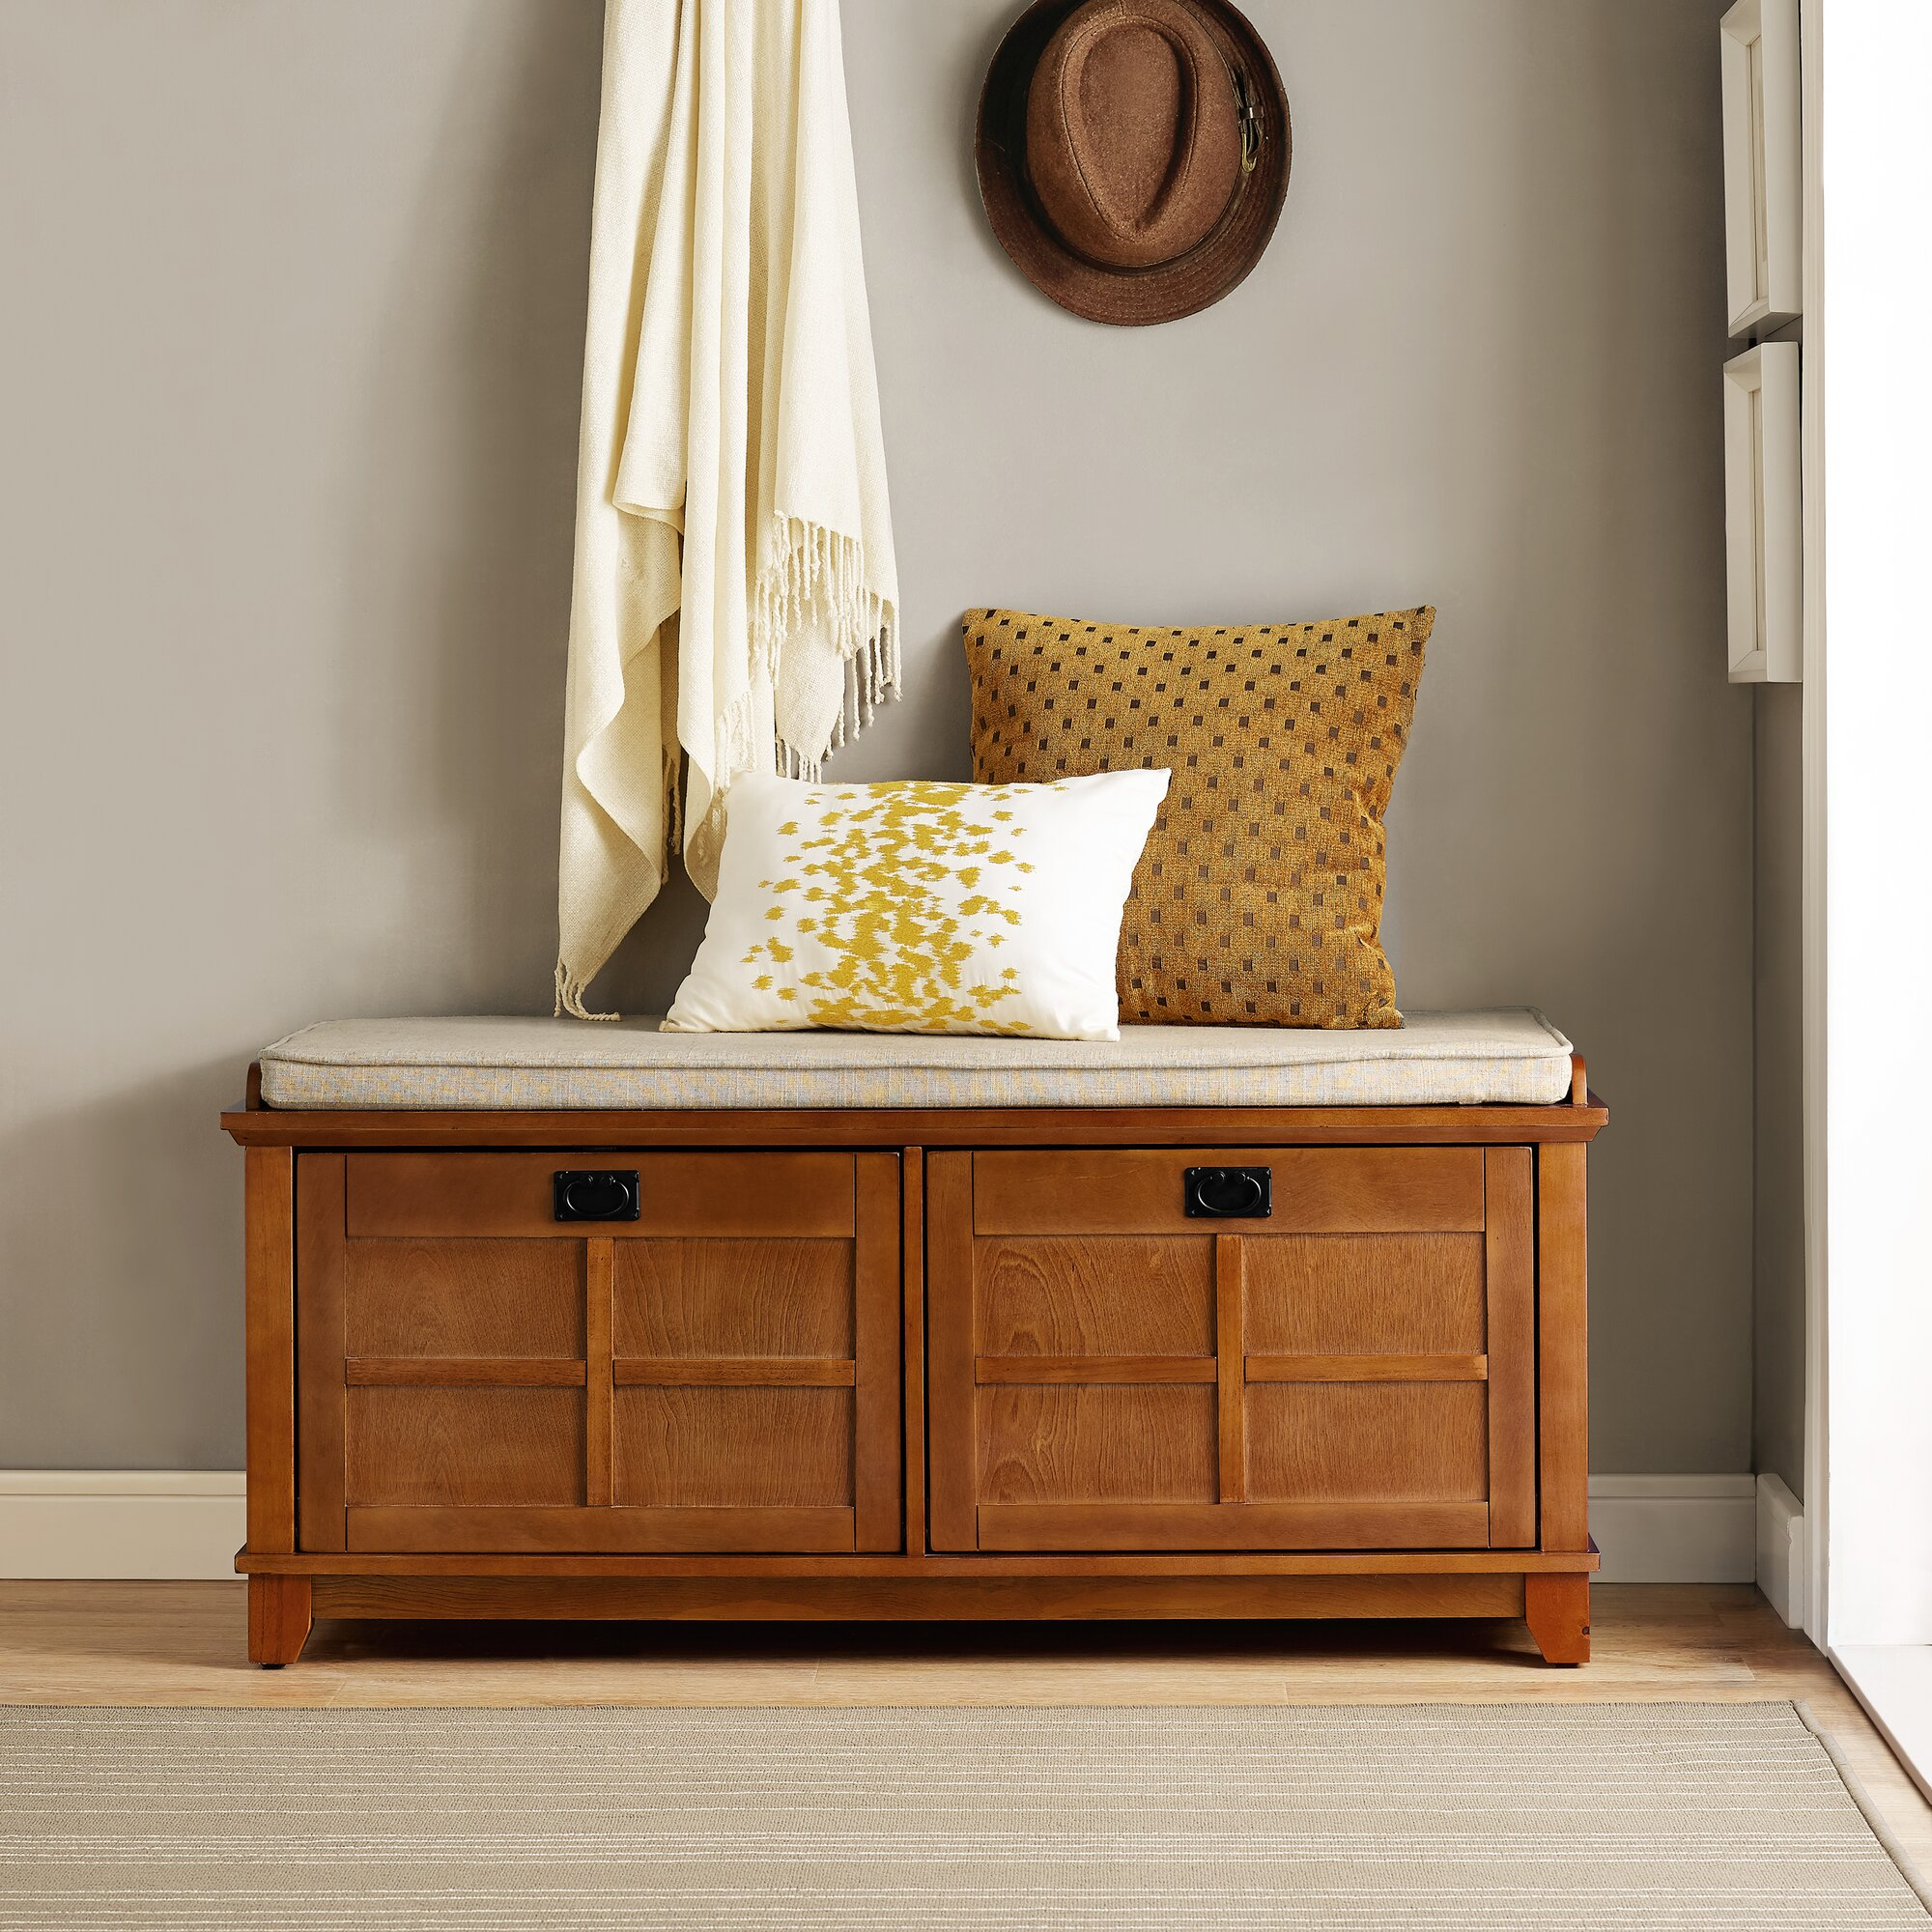 Buy Foyer Bench : Haddam fabric storage entryway bench reviews birch lane